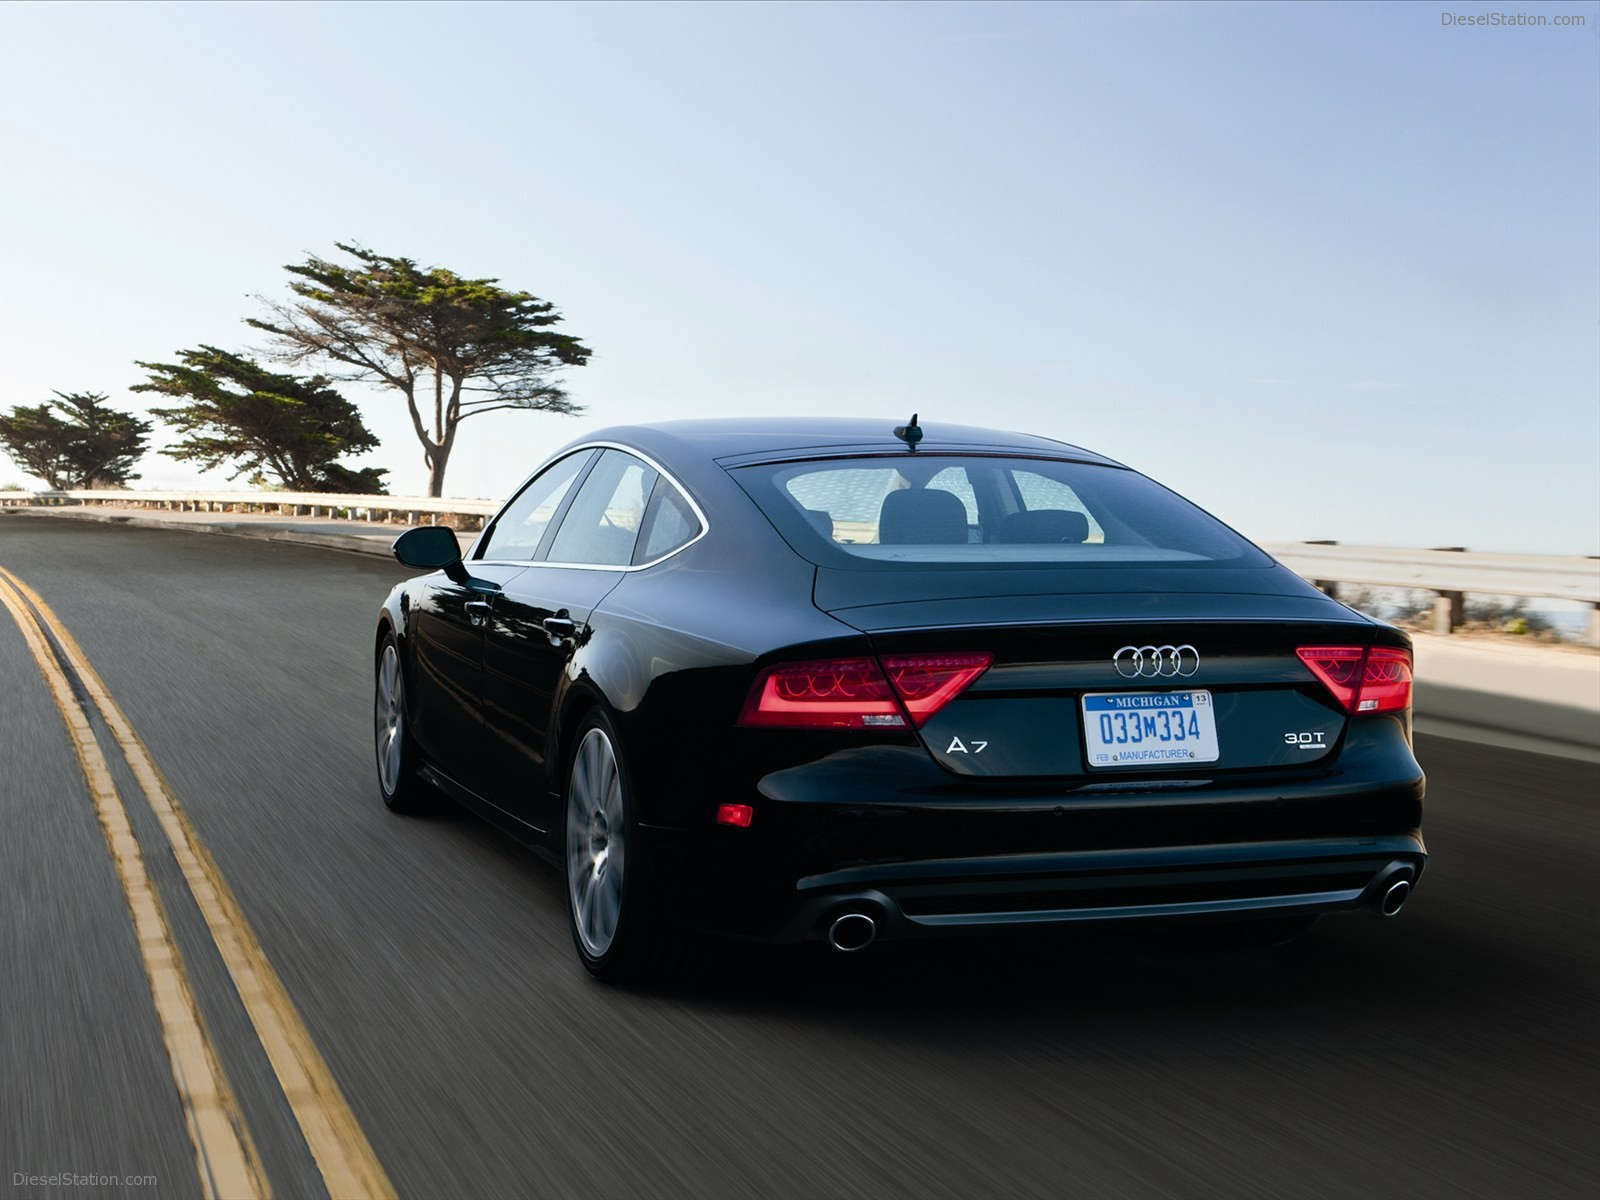 Audi A7 Wallpapers Wide Screen Wallpaper 1080p2K4K 1600x1200